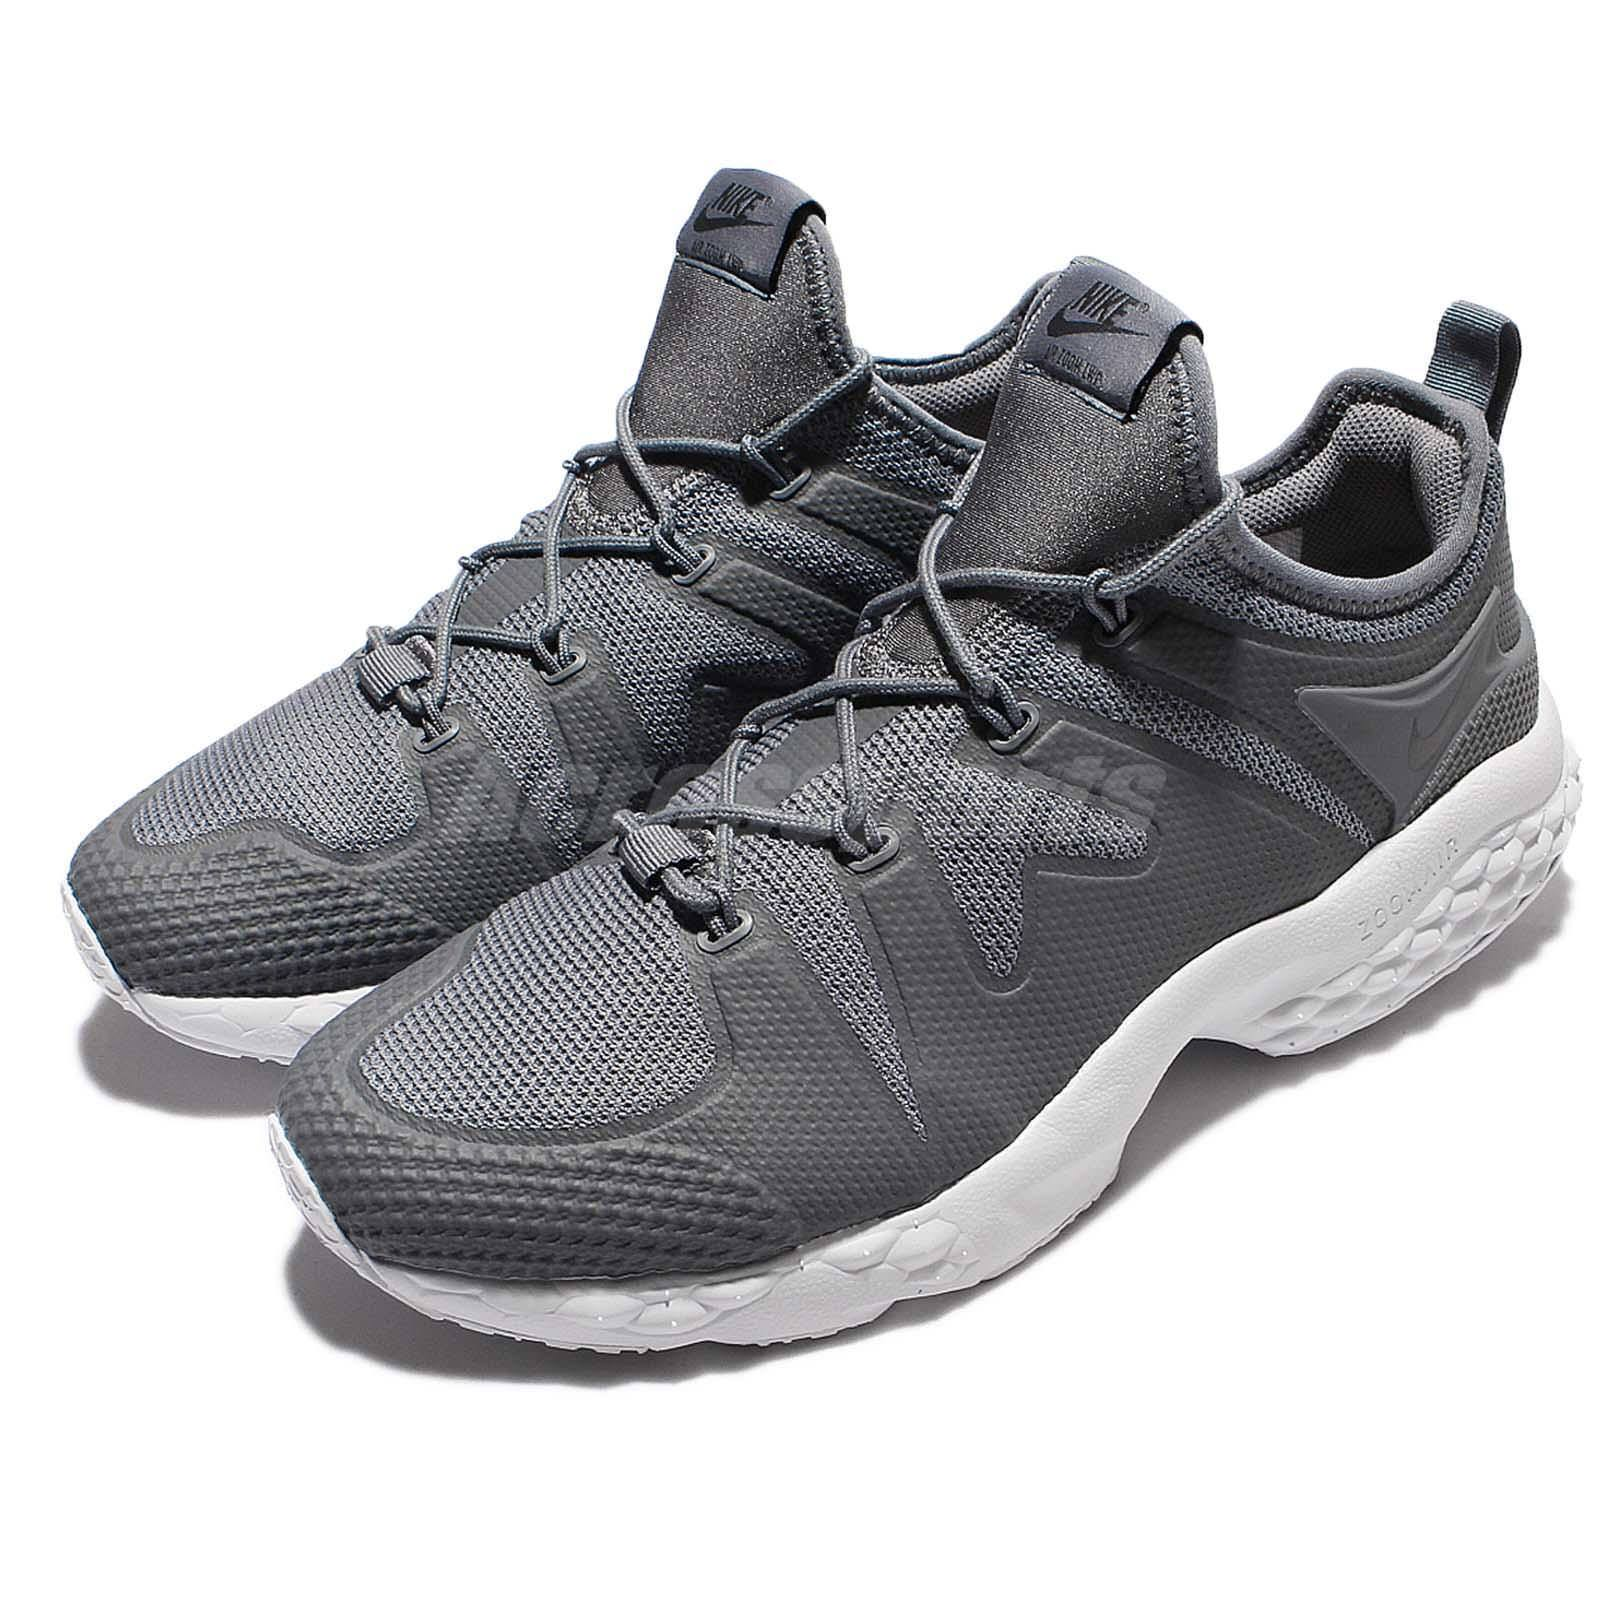 Nike new Air Zoom LWP SP Fashion Mens shoes 918226-004 size 10.5  150